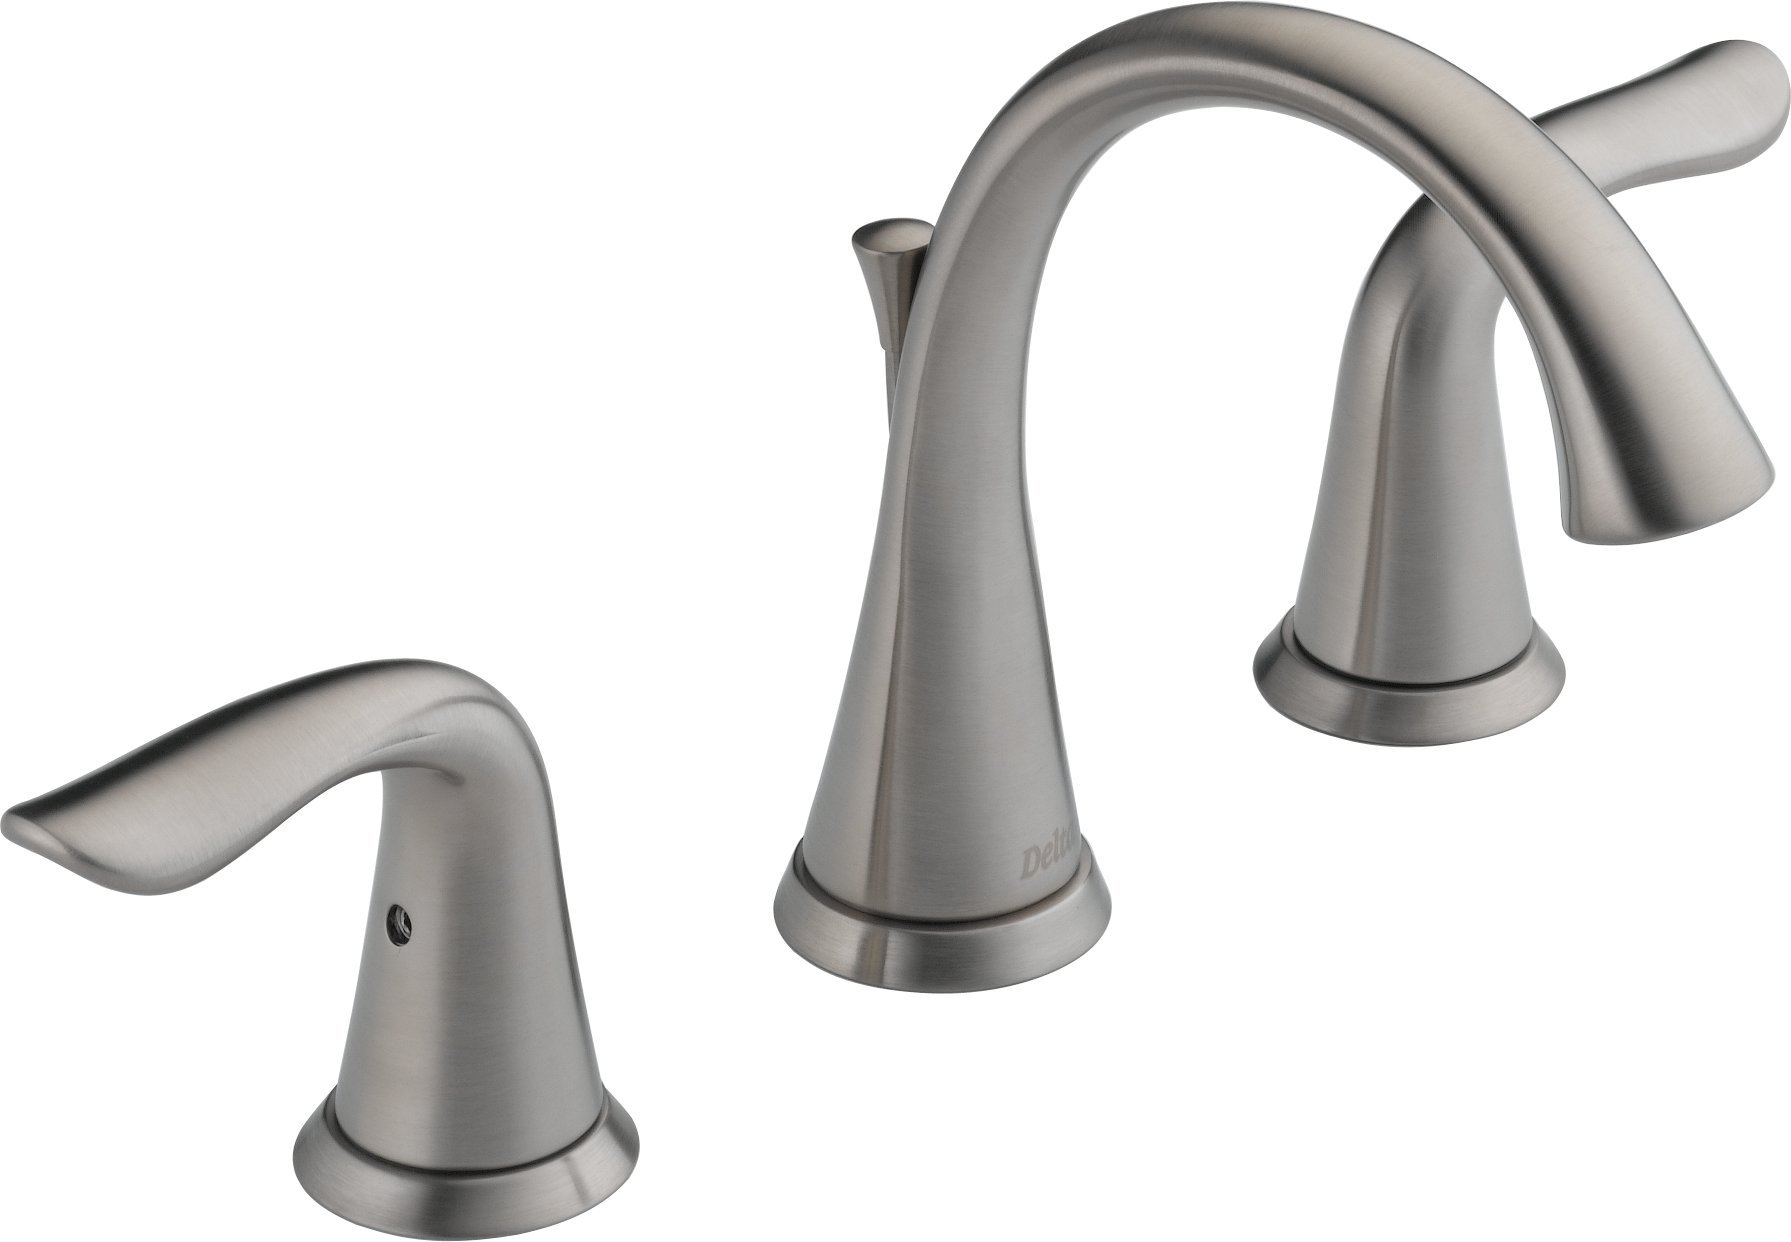 Delta 3538-SSMPU-DST Lahara 2-Handle Widespread Bathroom Faucet with Diamond Seal Technology and Metal Drain Assembly, Stainless